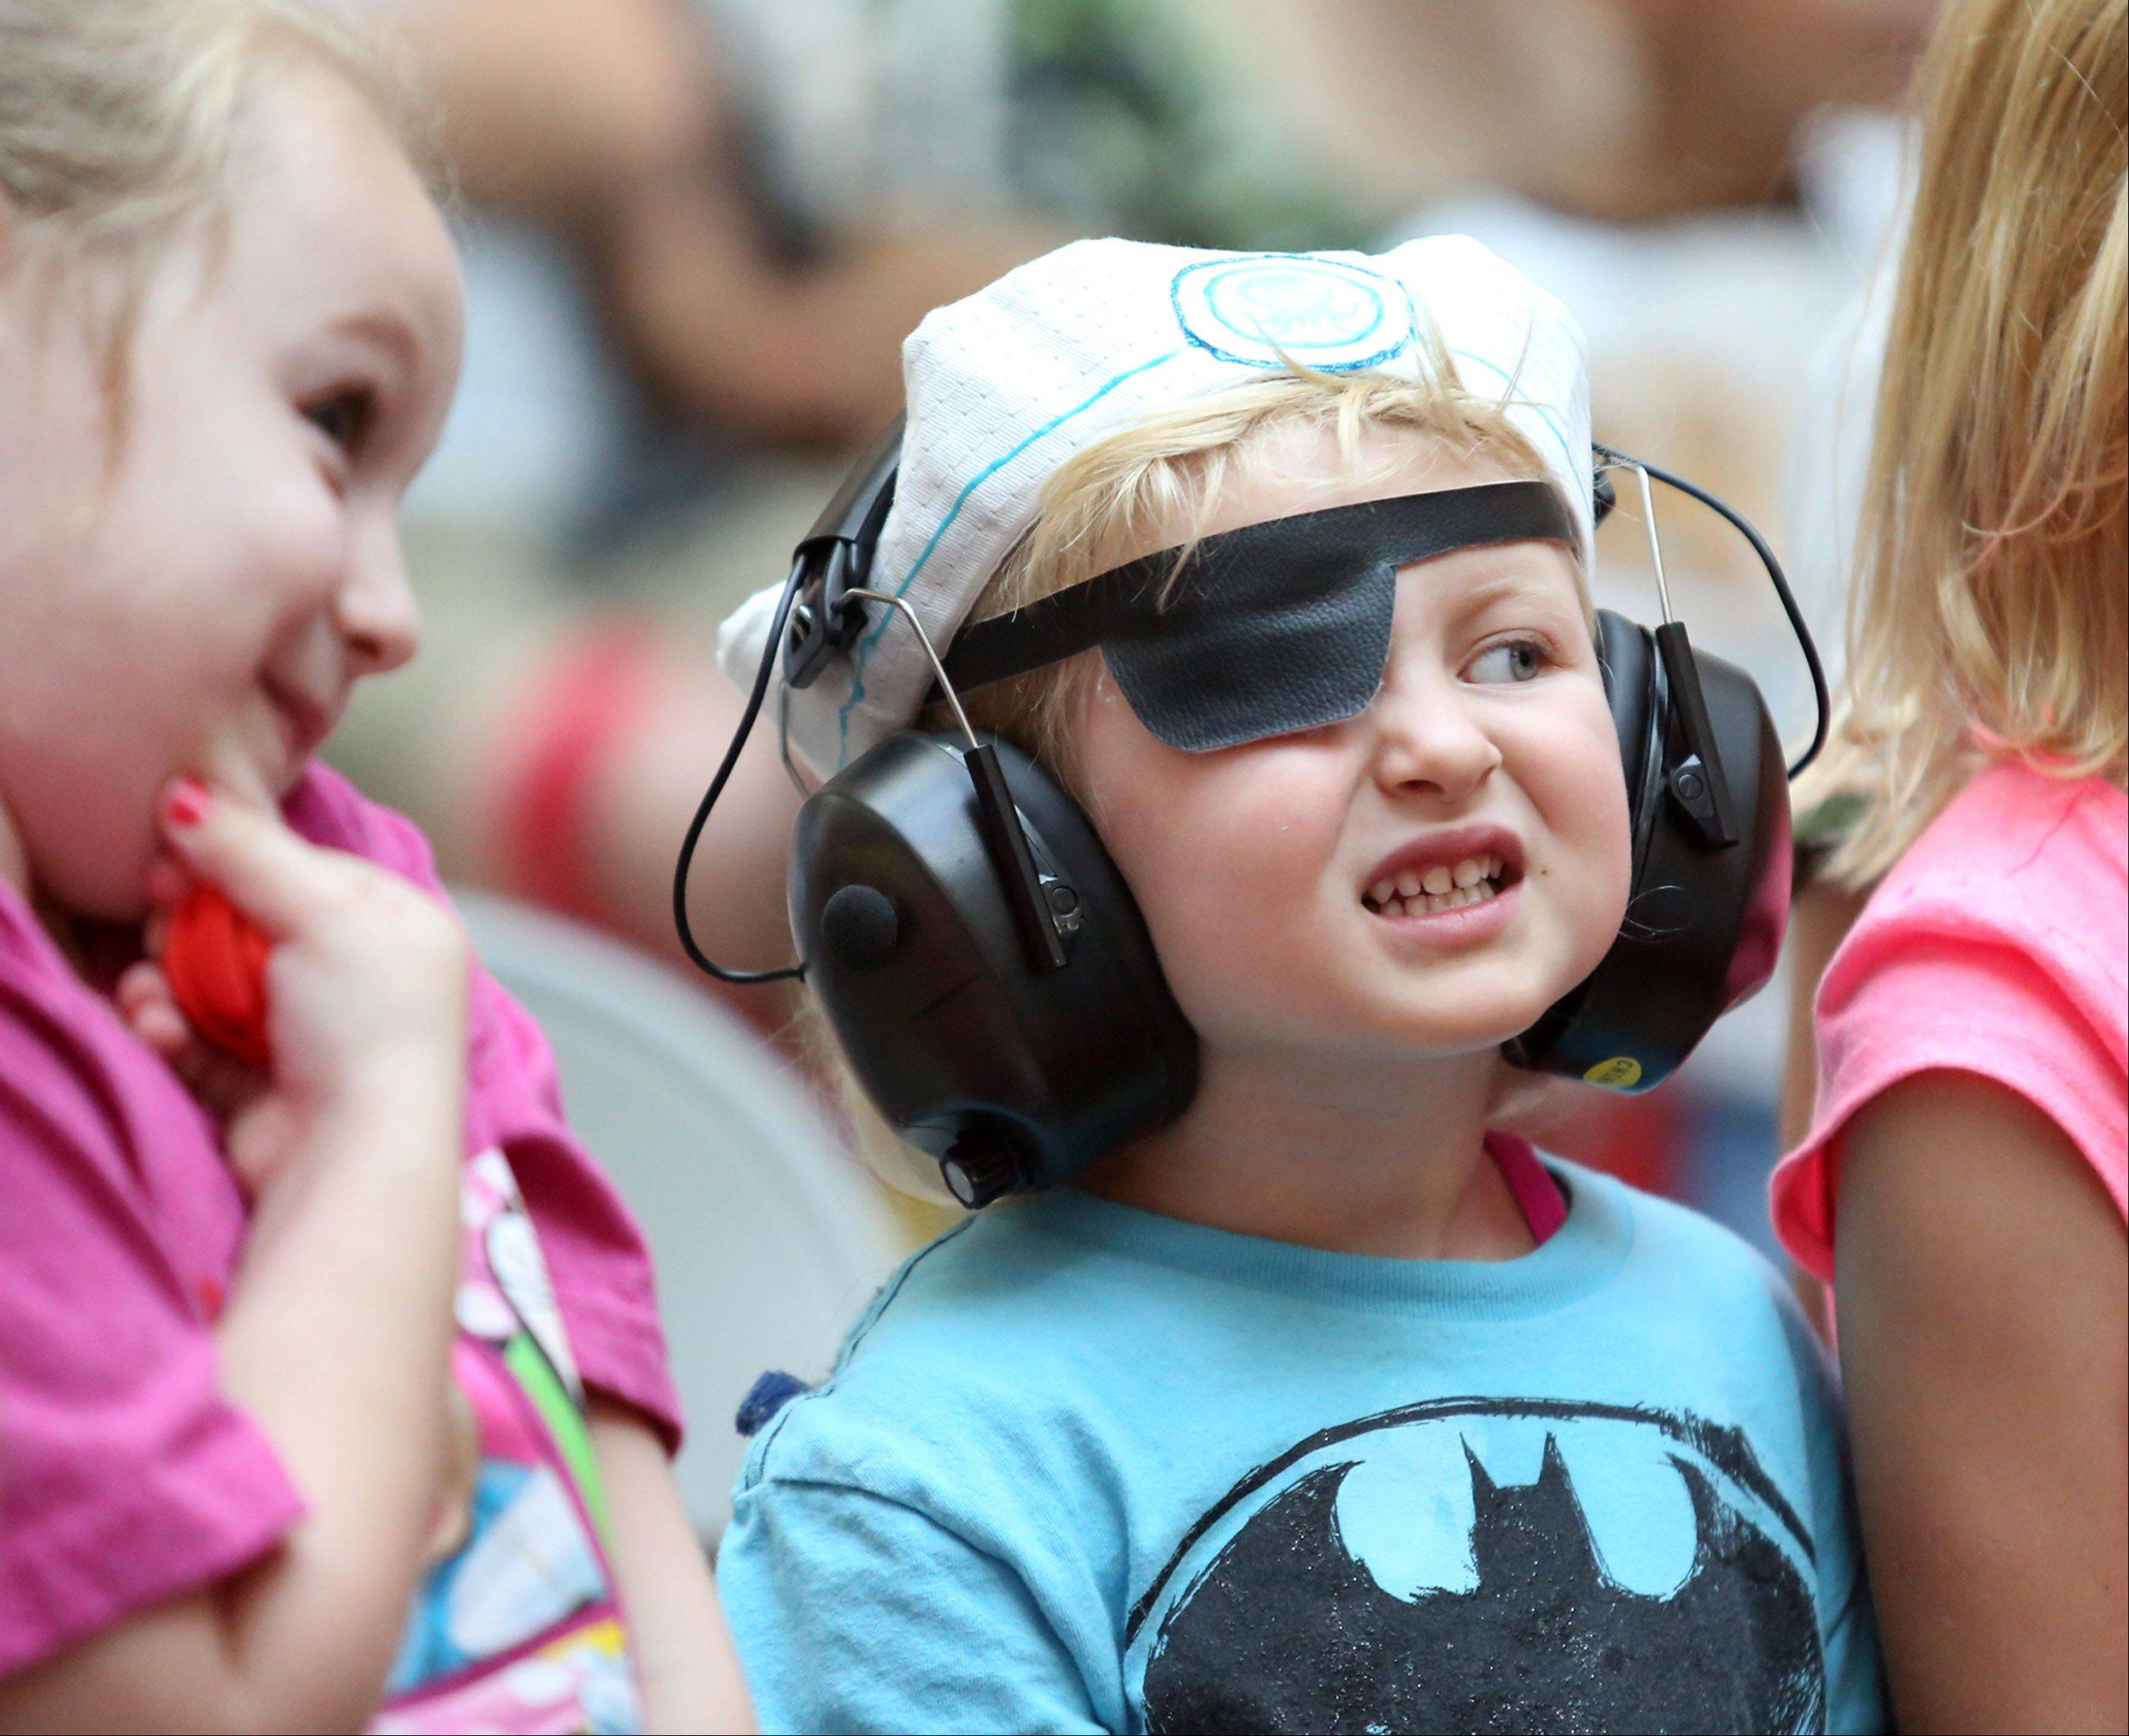 Four-year-old Lexi Alt, of Lake Zurich, wore a sailor cap and eye patch to match characters on the show Octonauts, but wore head phones to protect her ears from screams of excitement by over 100 children watching The Octonauts' Captain Barnacles and Kwazii Kitten from the hit Disney children's television series, performing at Westfield Hawthorn Mall in Vernon Hills on Friday.